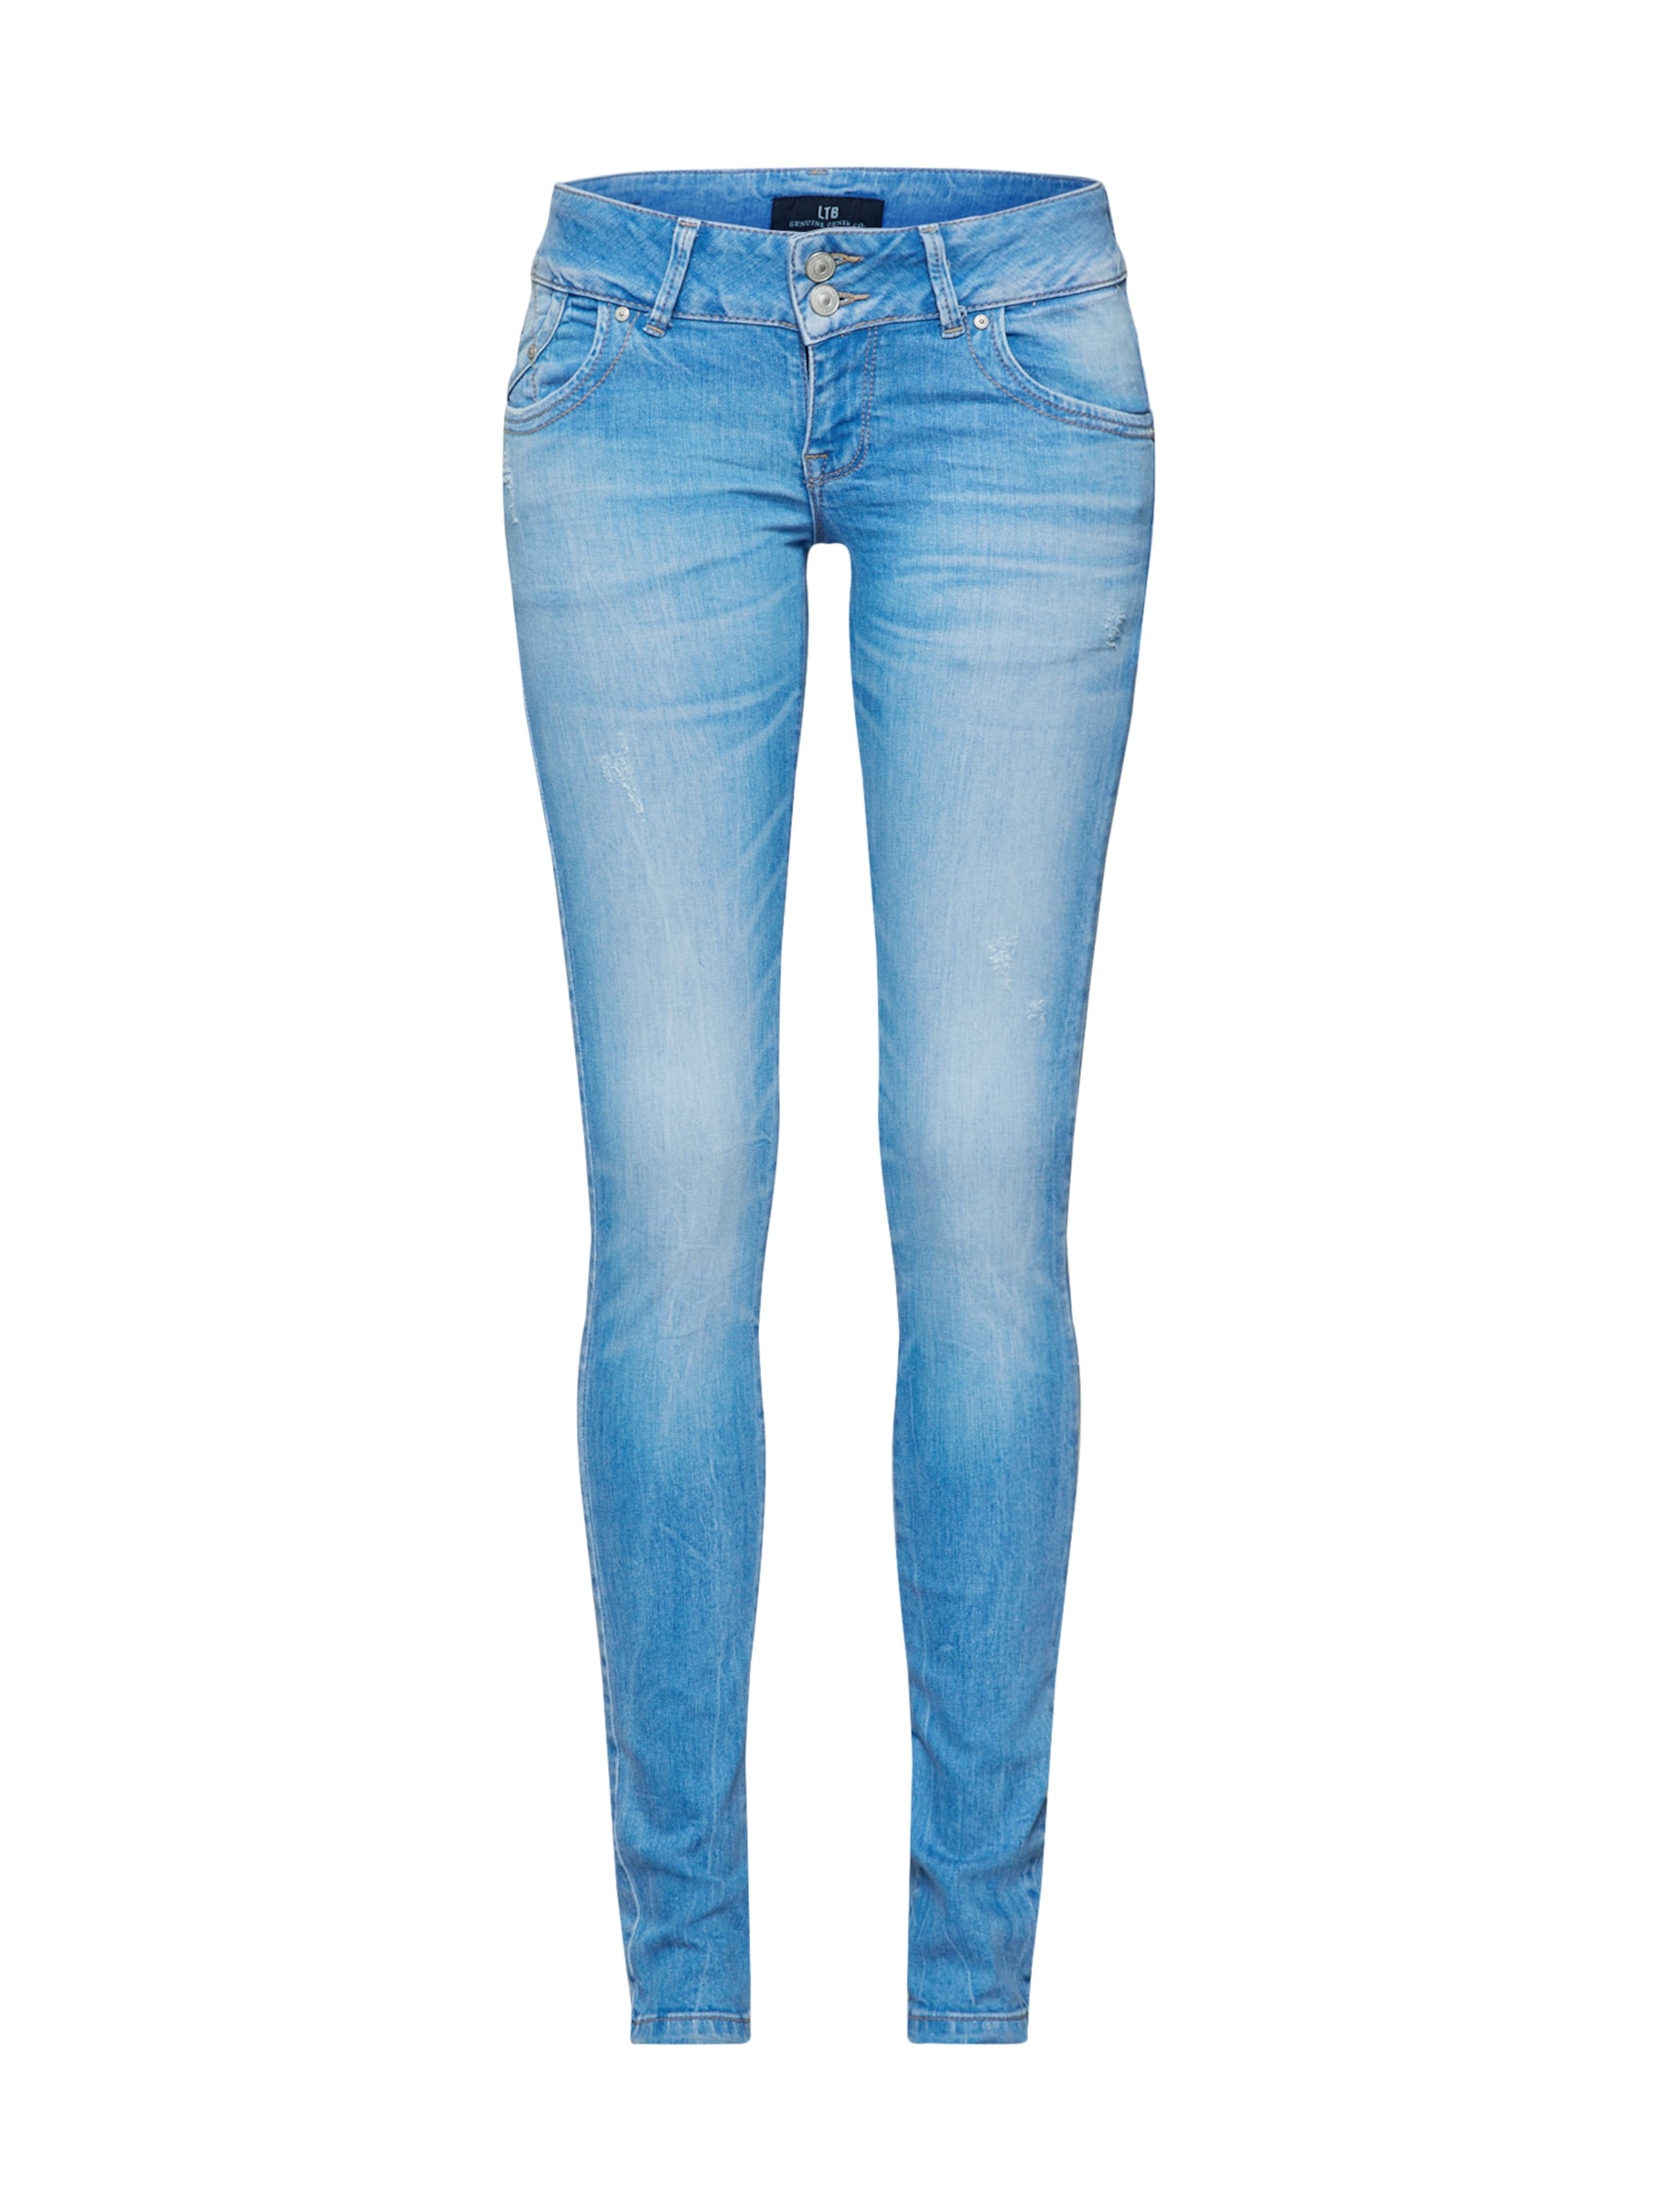 'molly' Ltb Blauw In Jeans Denim fyY7g6Ibv